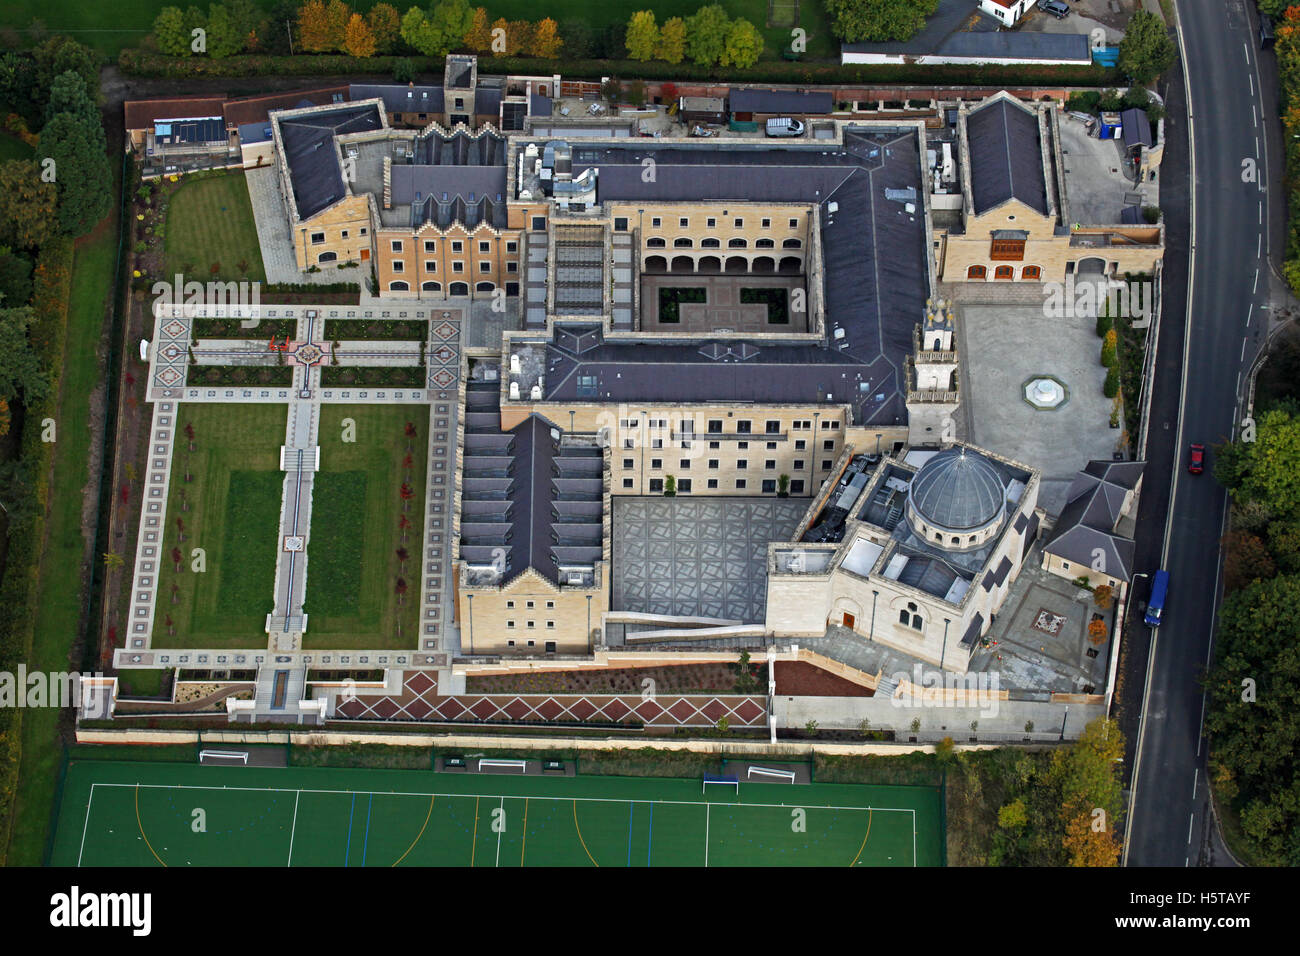 aerial view of the Oxford Centre for Islamic Studies, UK - Stock Image